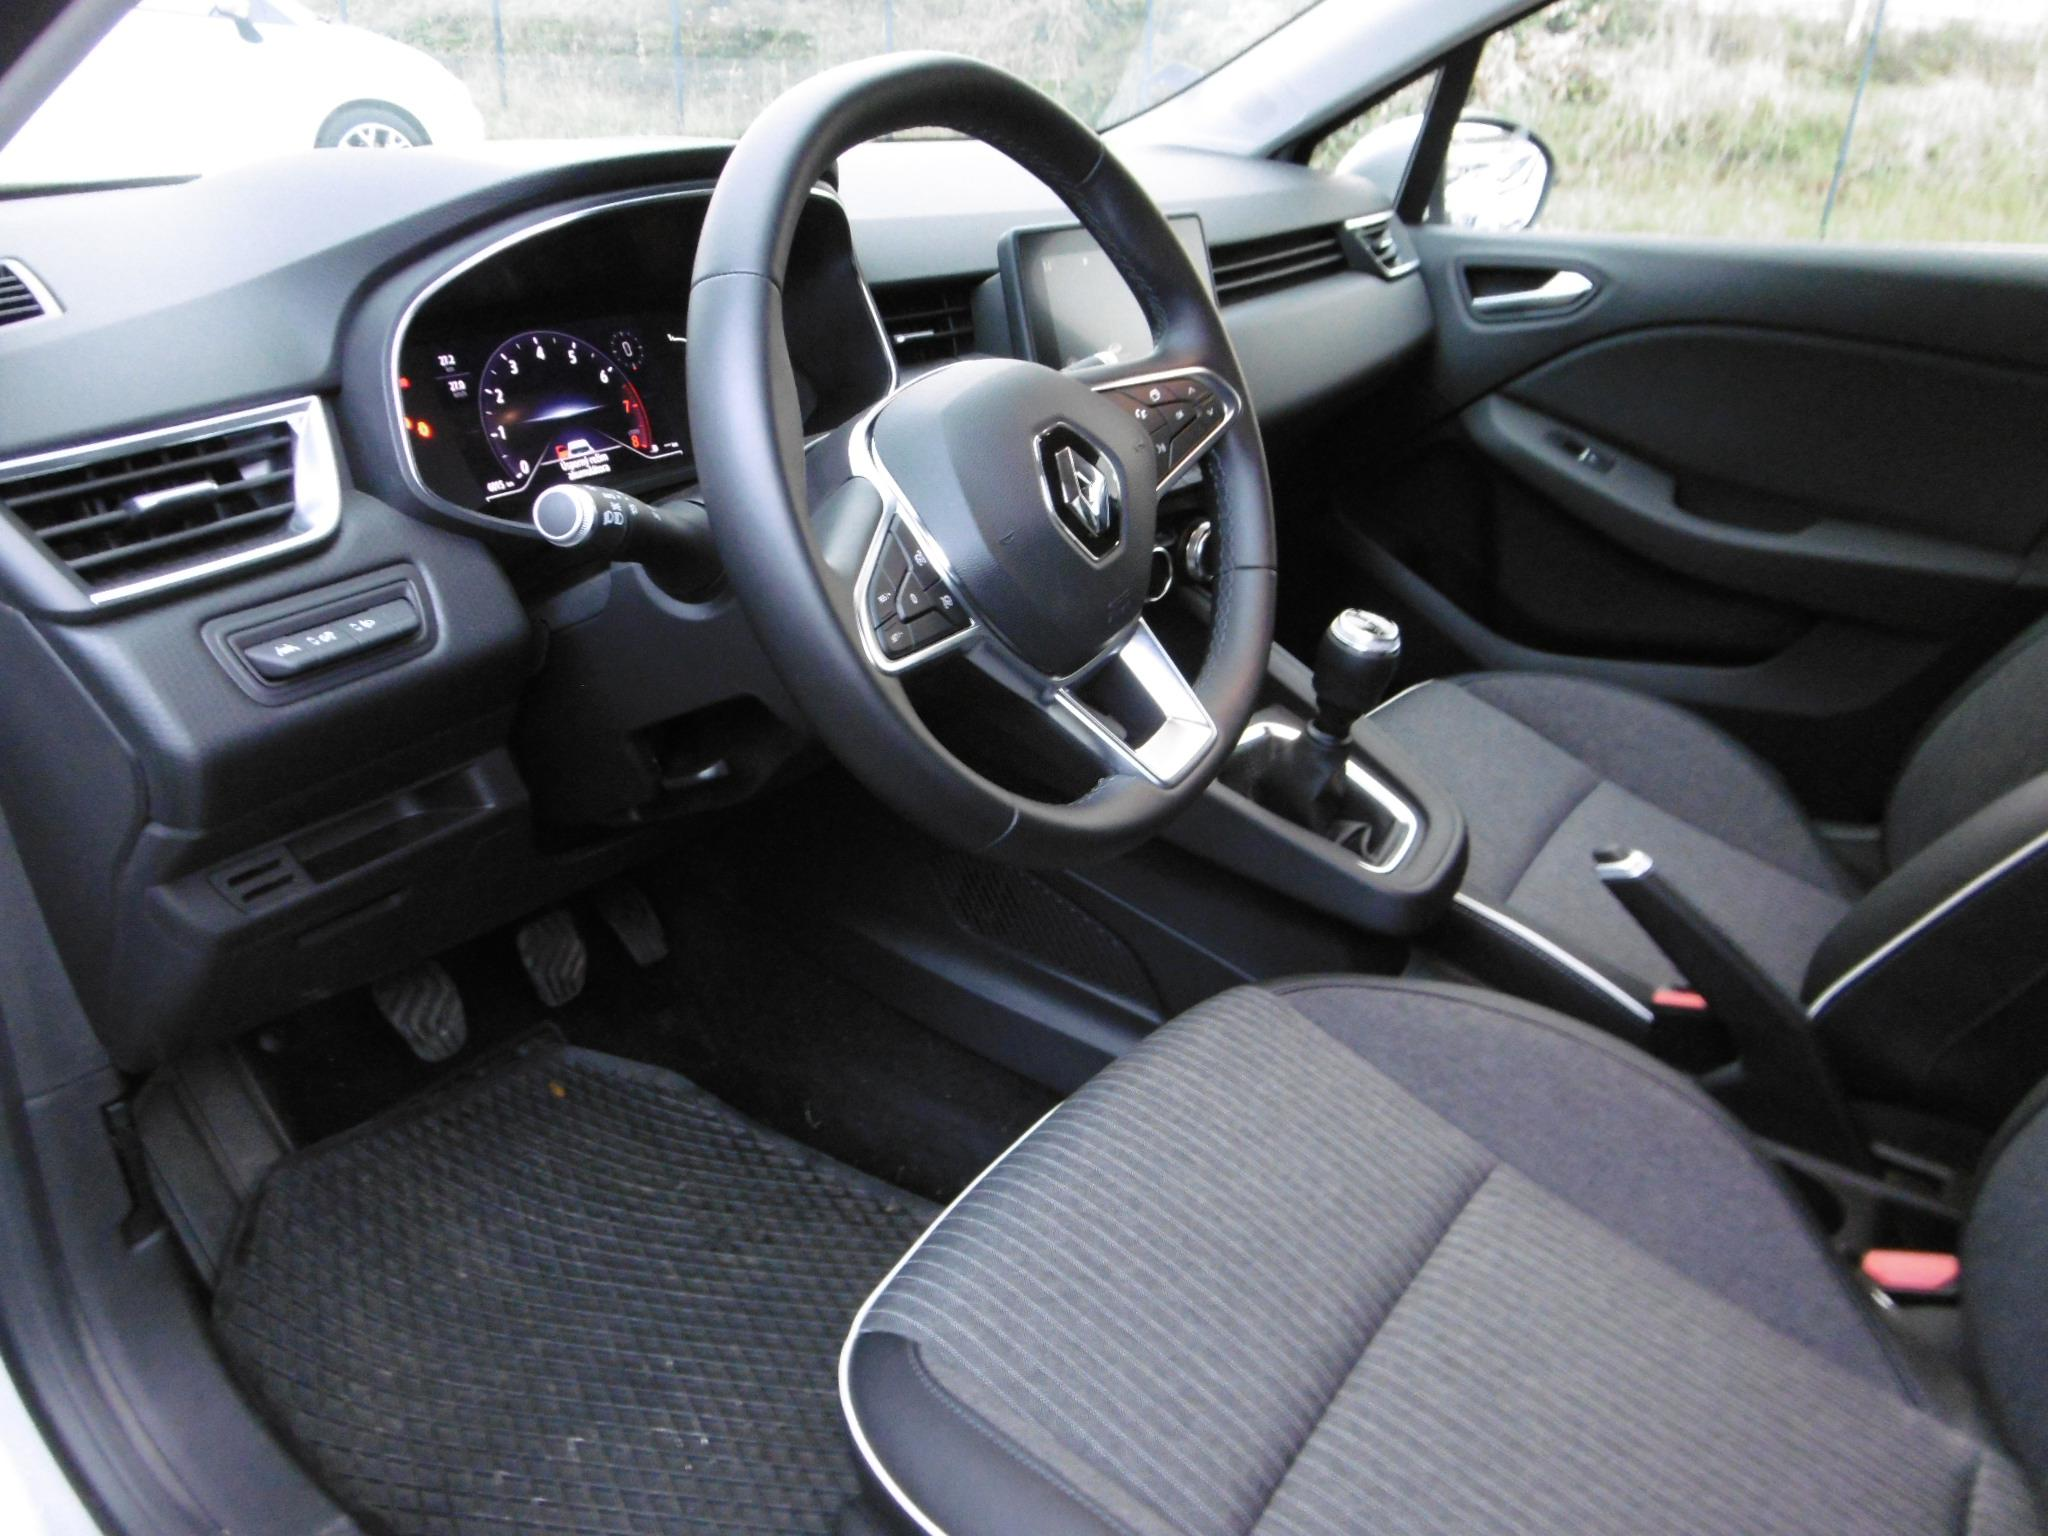 Renault Clio V 1.0 TCE 100  Intens